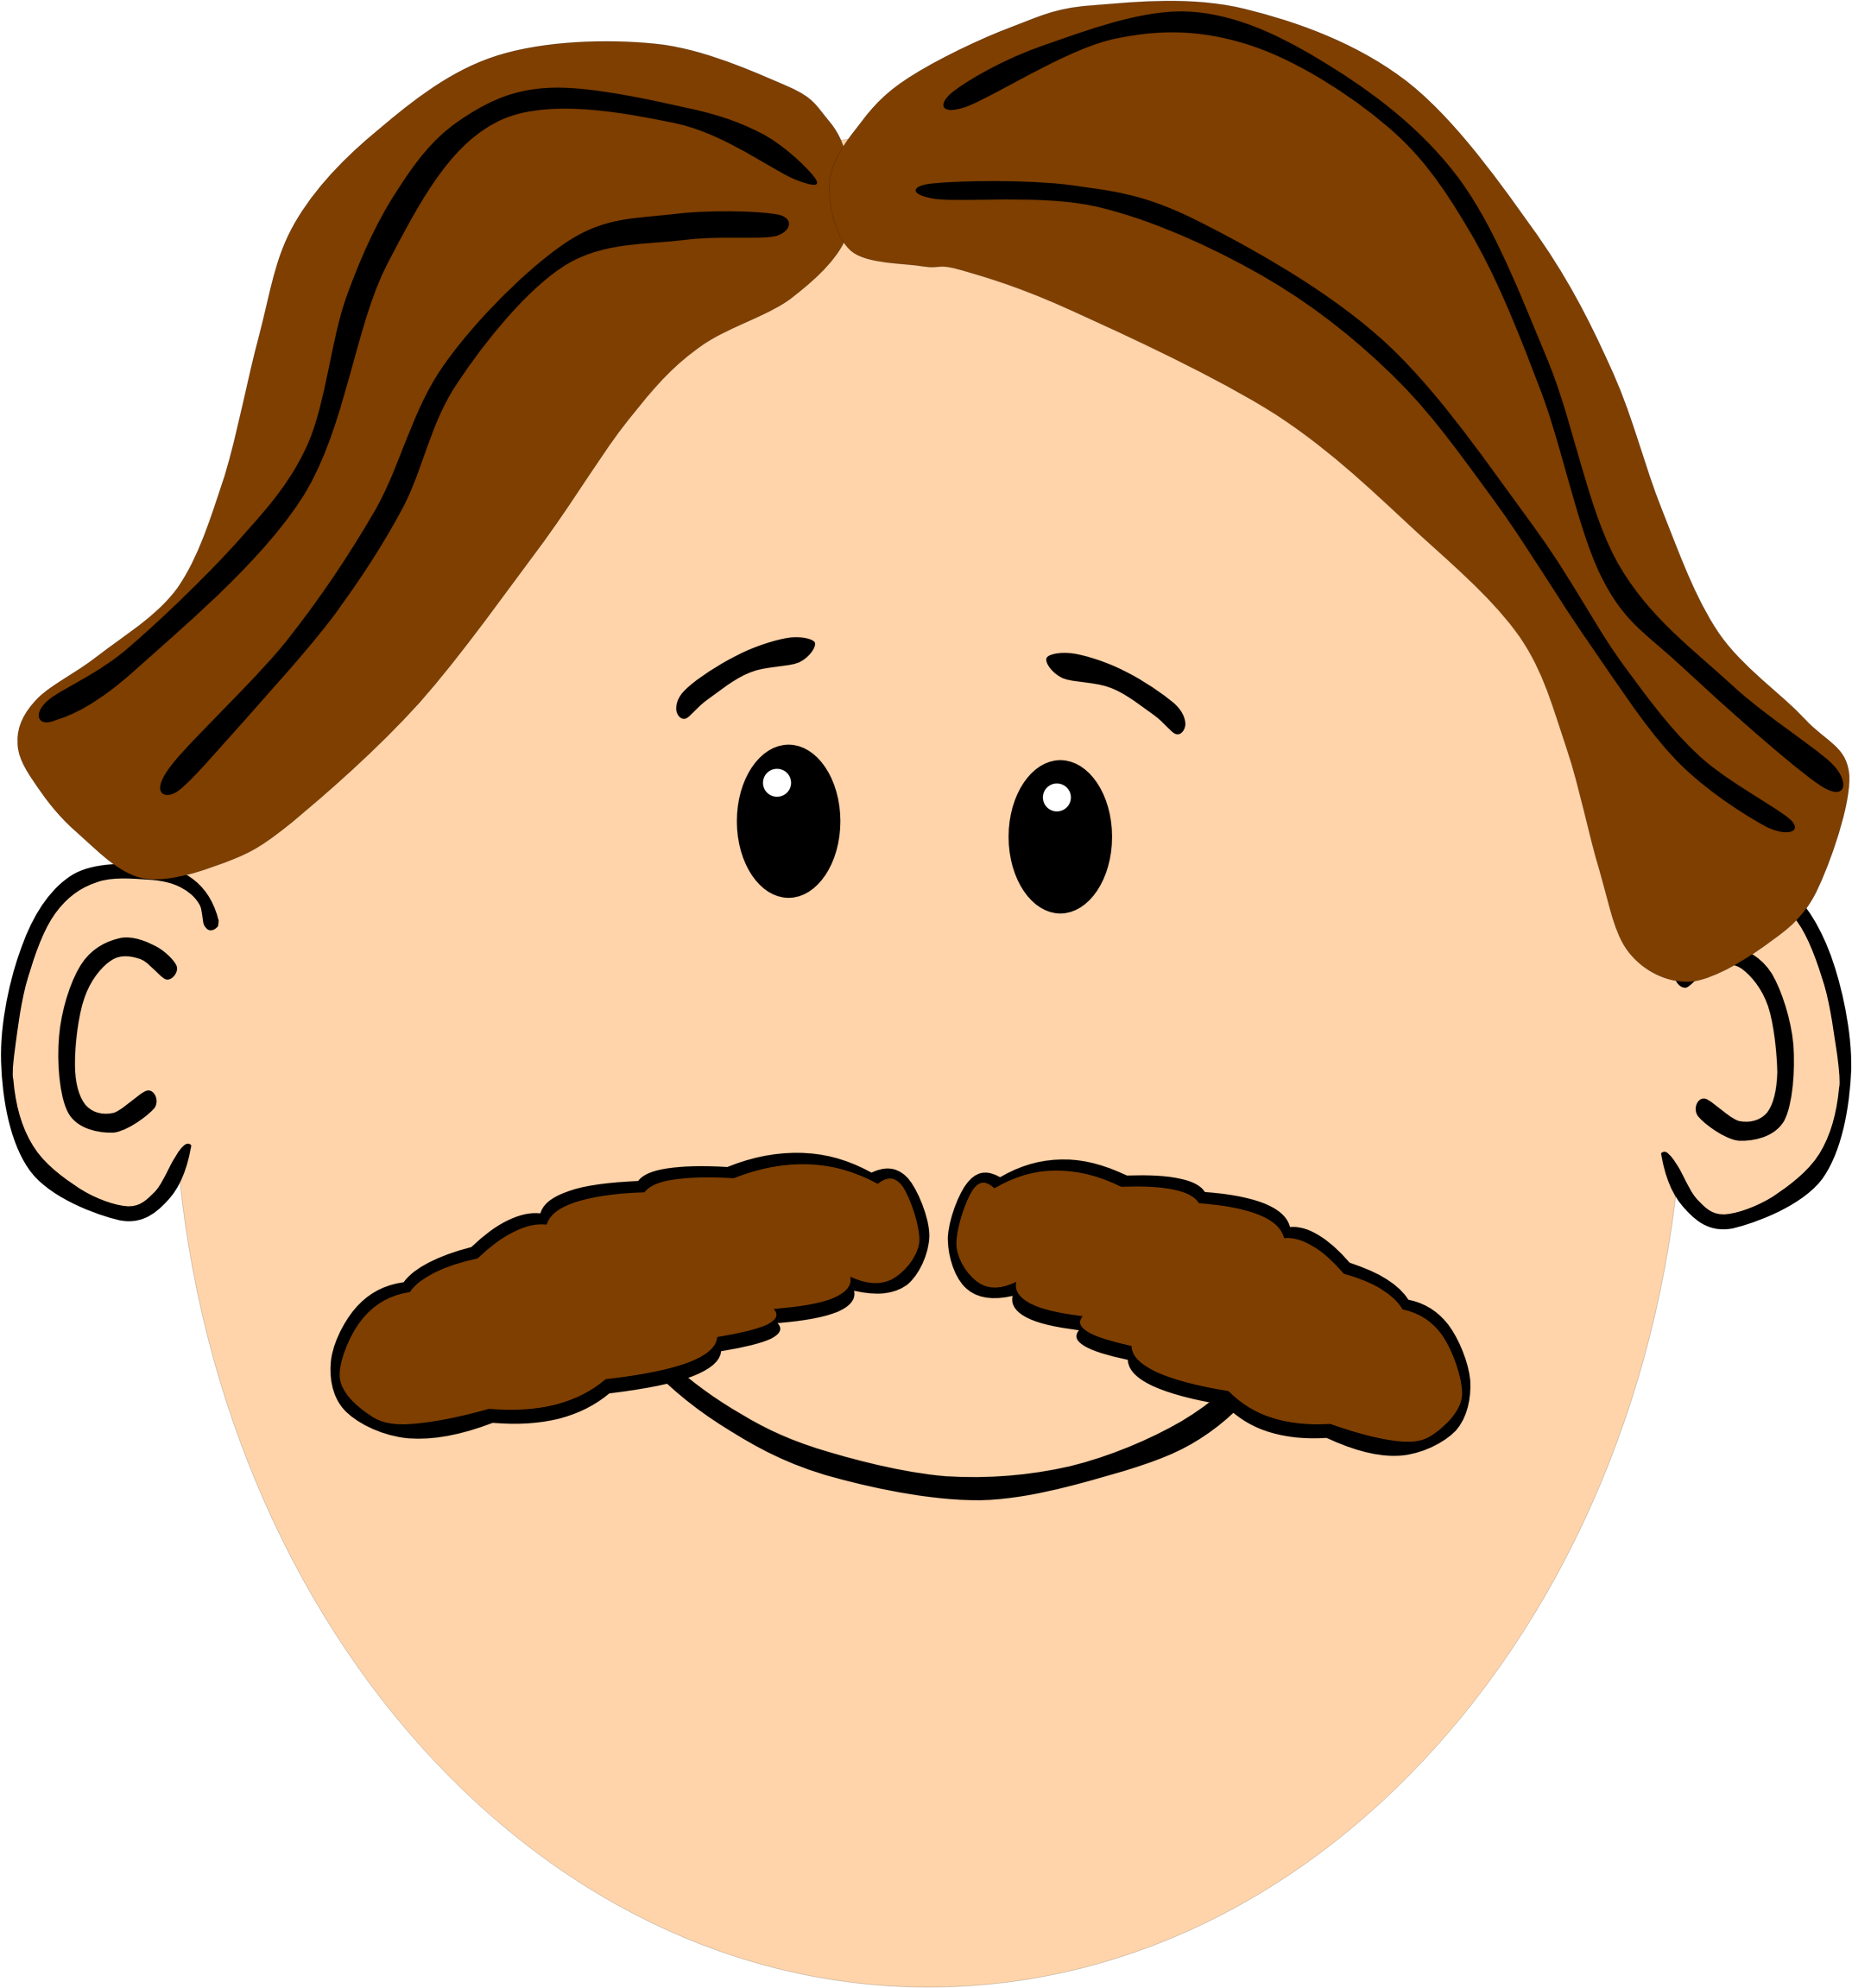 man with brown hair and mustache by cirenovy